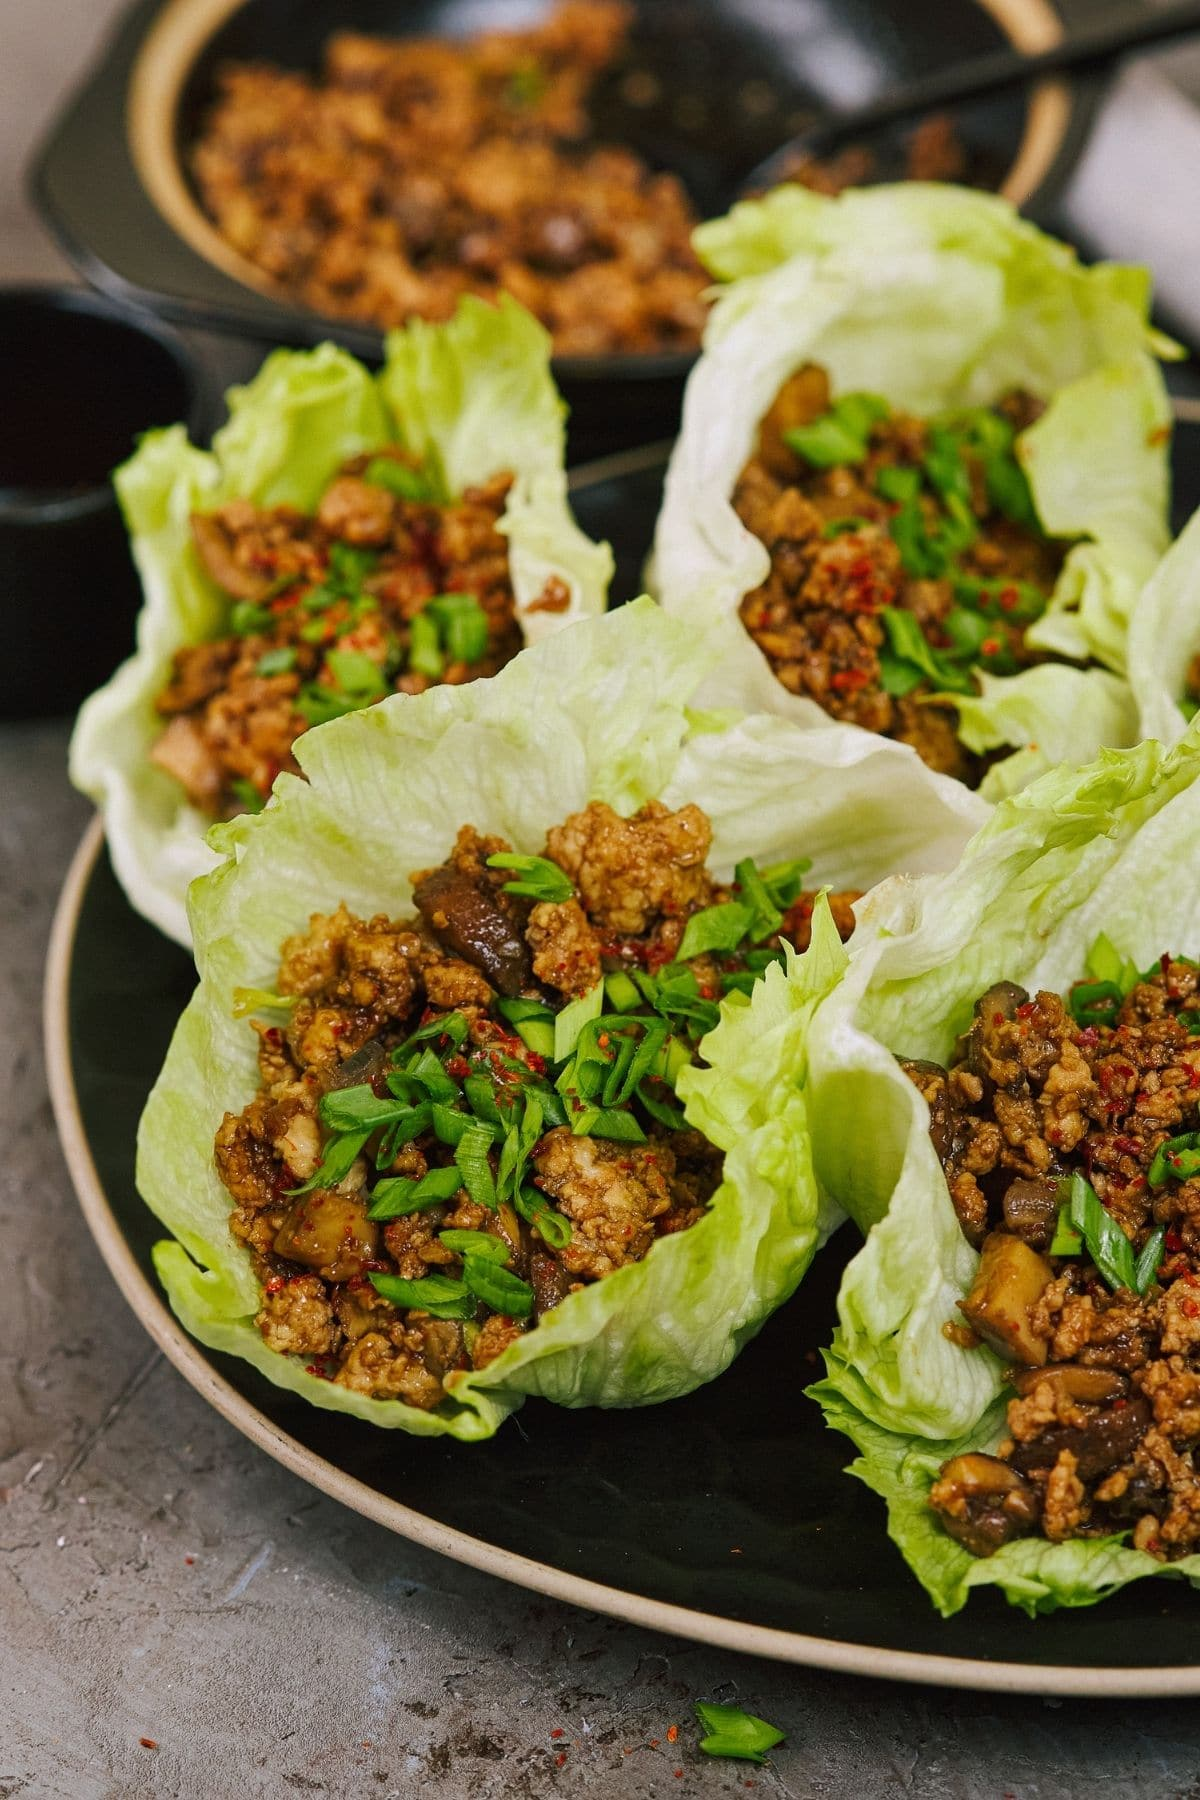 Multiple lettuce leaves filled with chicken mixture on plate